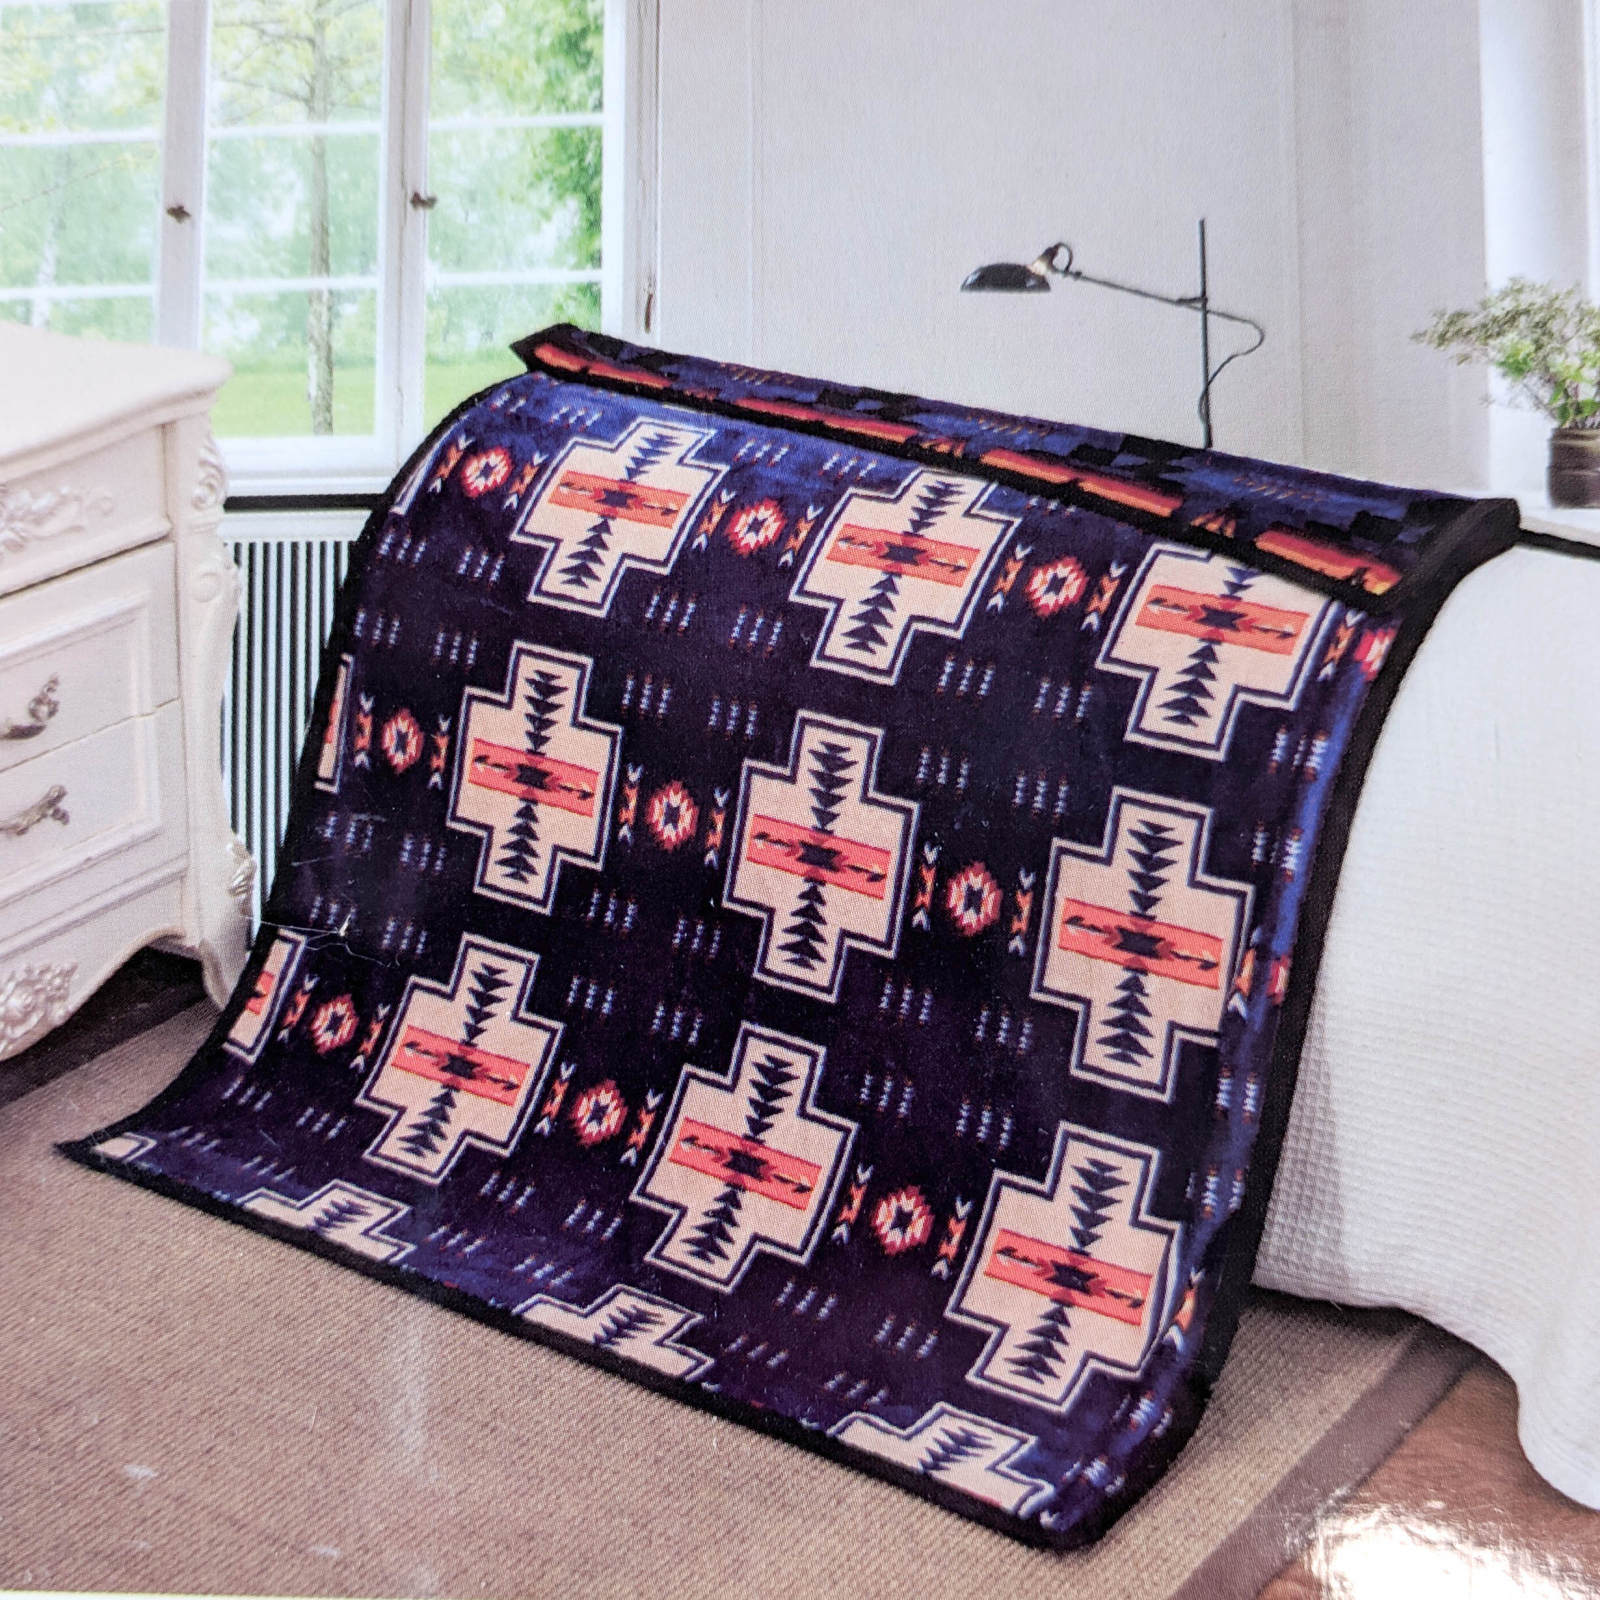 ASR Outdoor Southwest Blanket Reversible Throw - Navy Blue